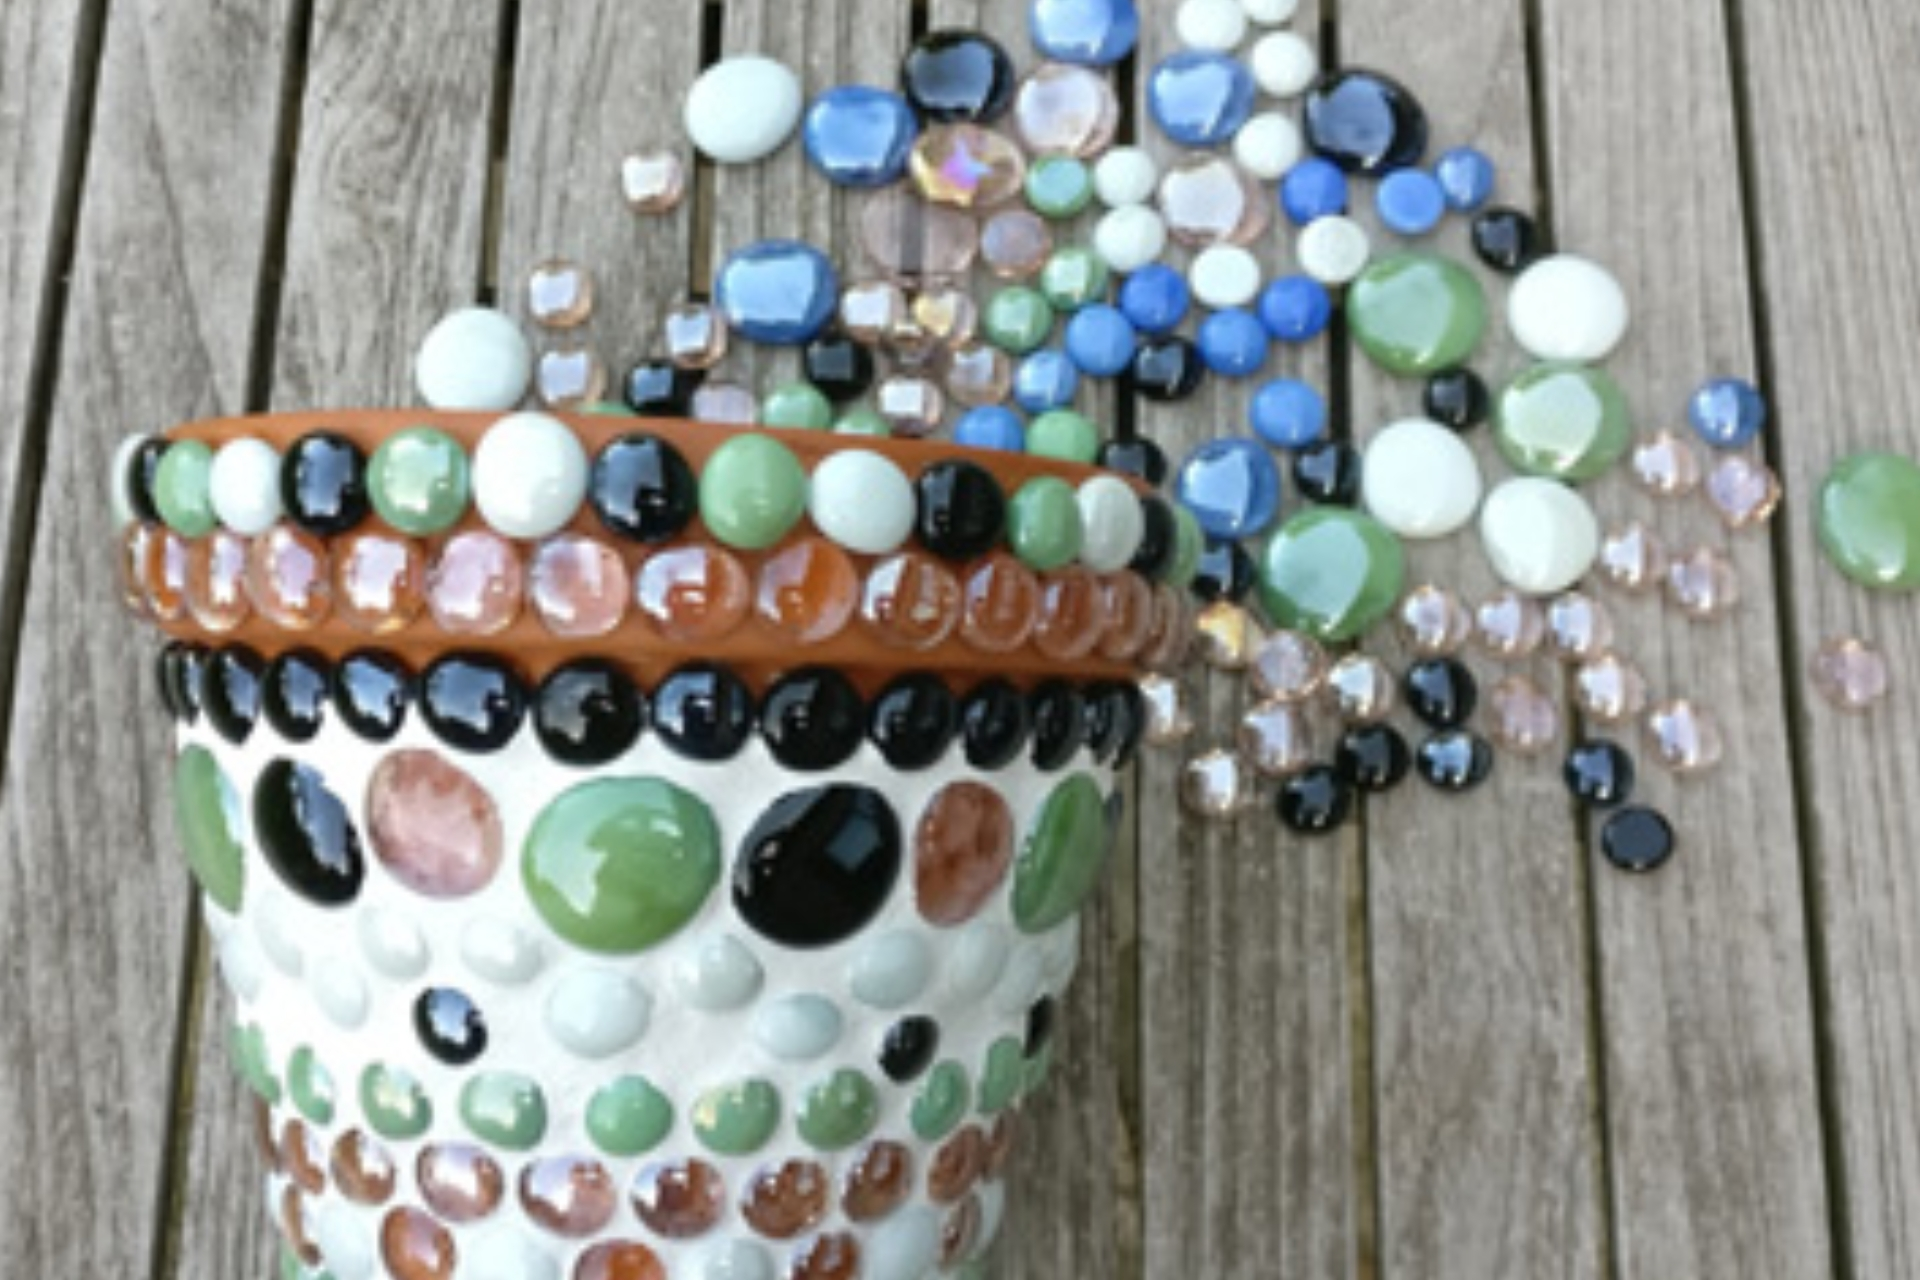 planting pot with glass beads